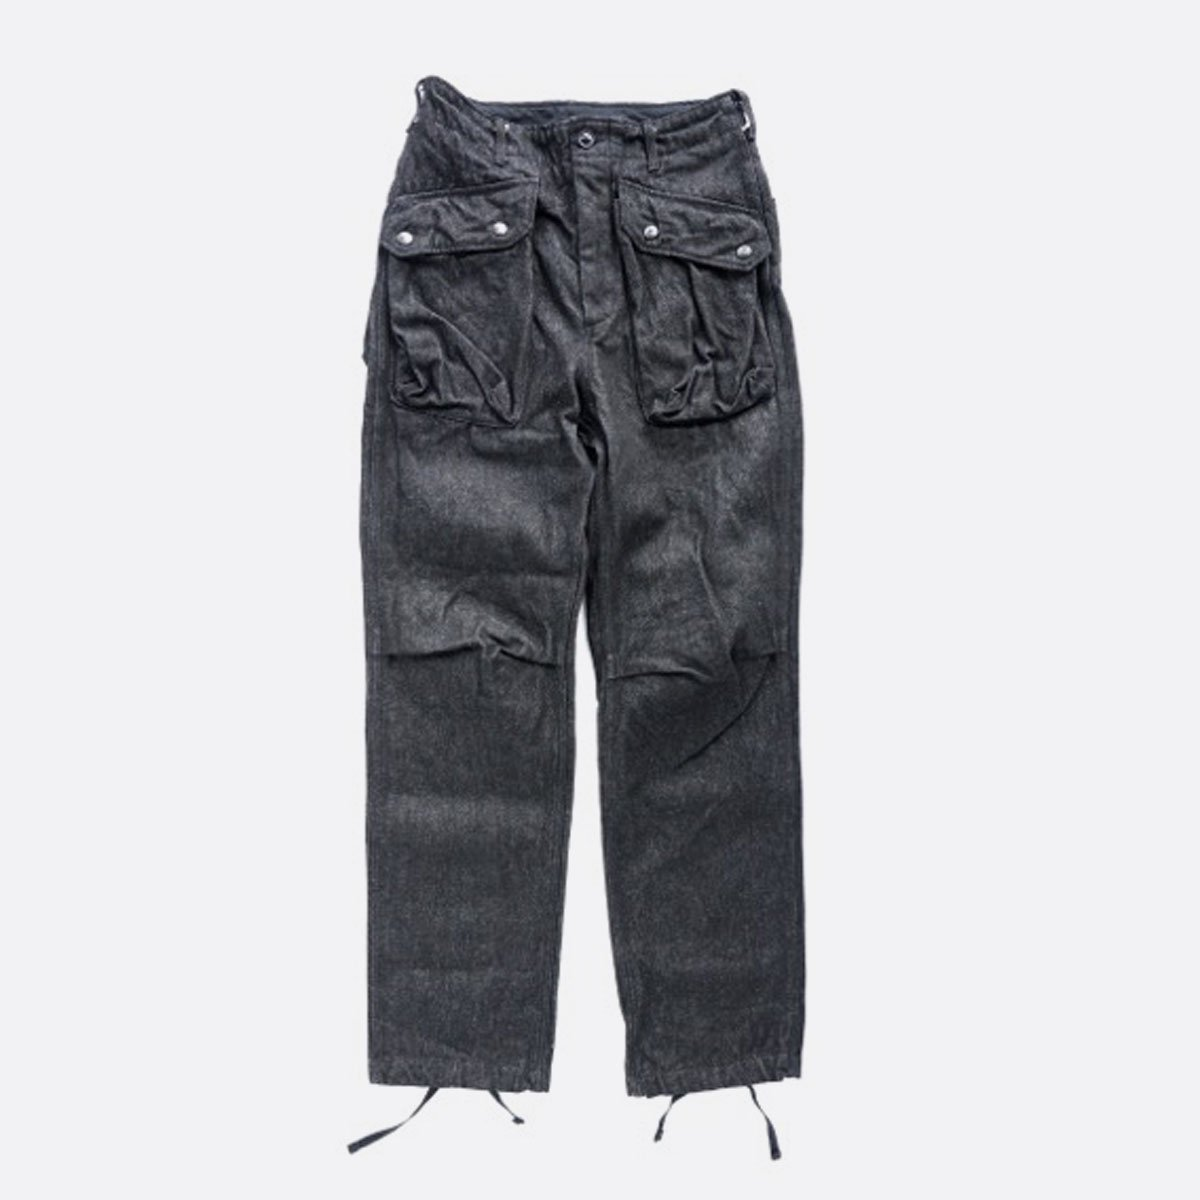 Engineered Garments Norwegian Pant - Heavy Denim  (Black)